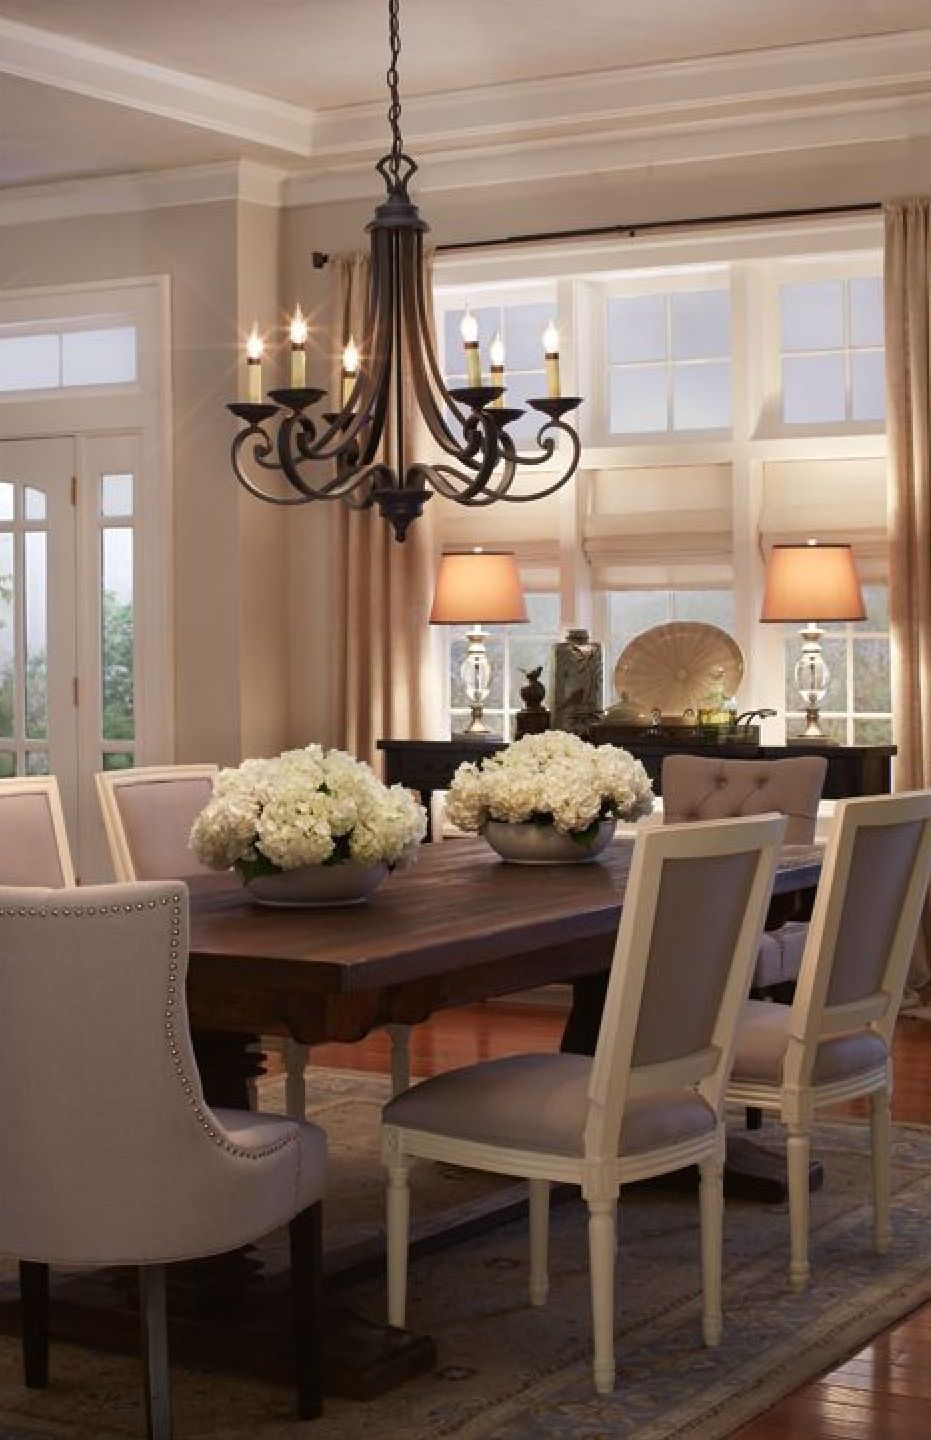 Diningroom Tables Chairs Chandeliers Pendant Light Ceiling